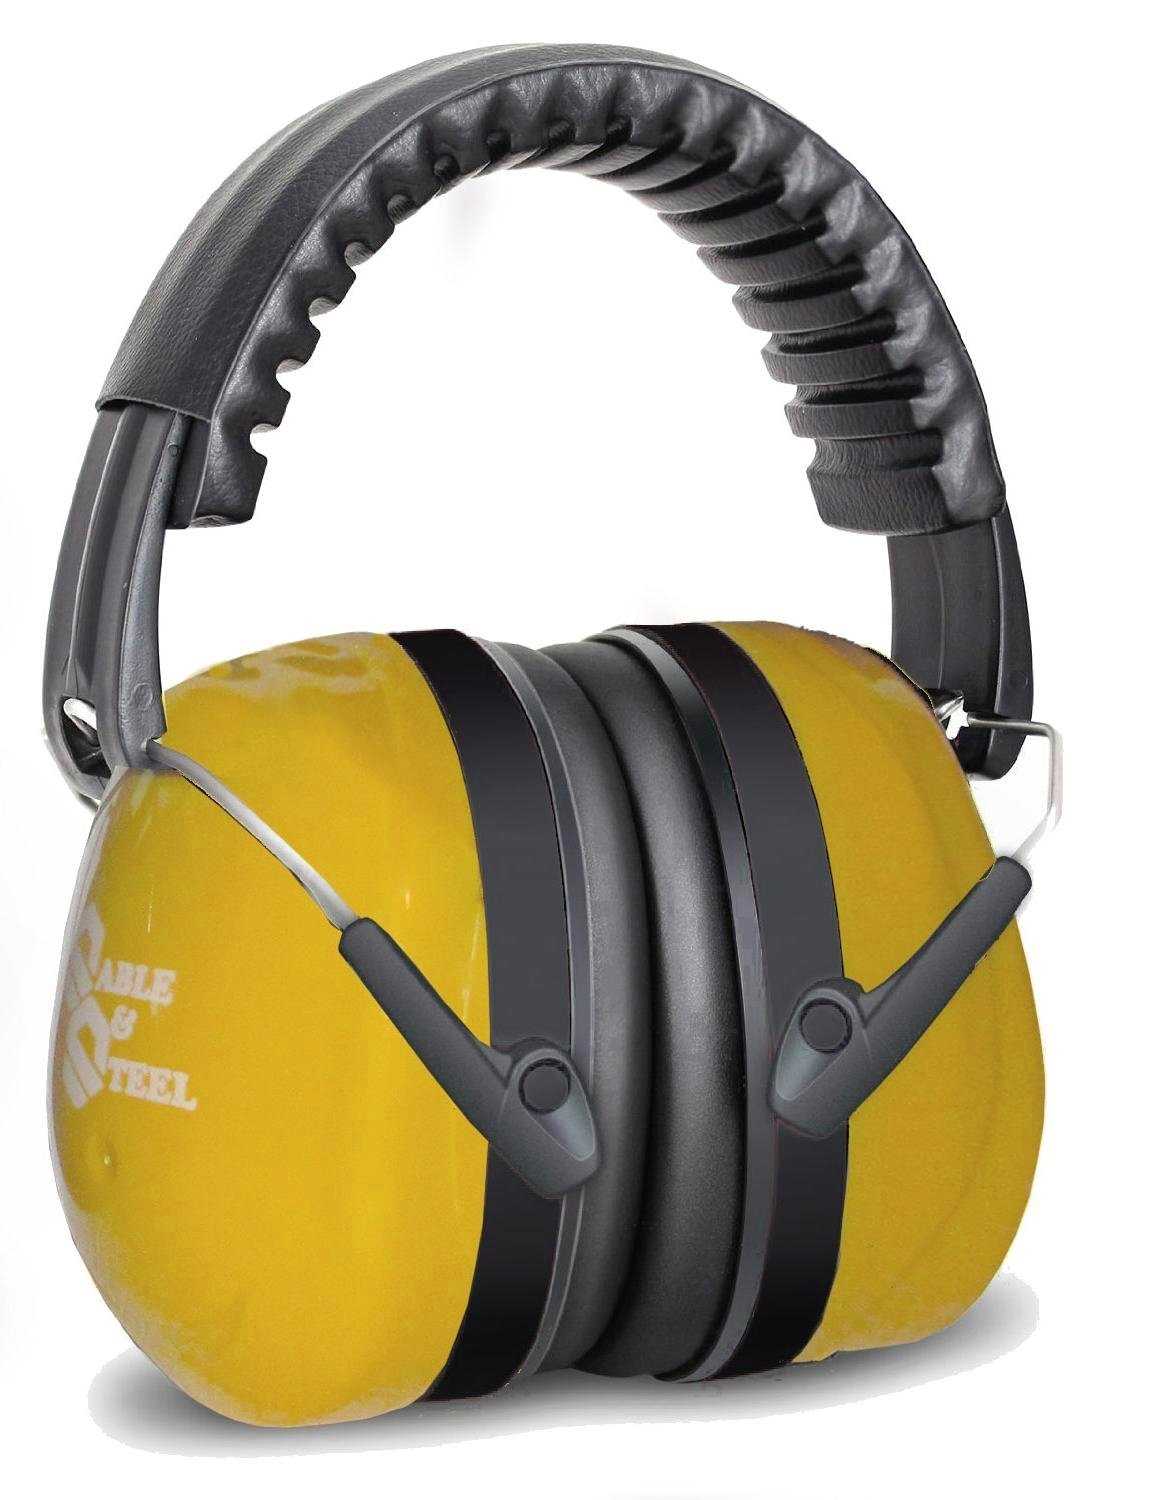 Sable & Steel Highest NRR 35db Safety Ear Muffs Auto Adjustable Earmuffs Shooters Hearing Protection Ear Muffs For Sports Outdoors Shooting Racing Work. Fits Adults Children.Yellow by Sable & Steel (Image #2)